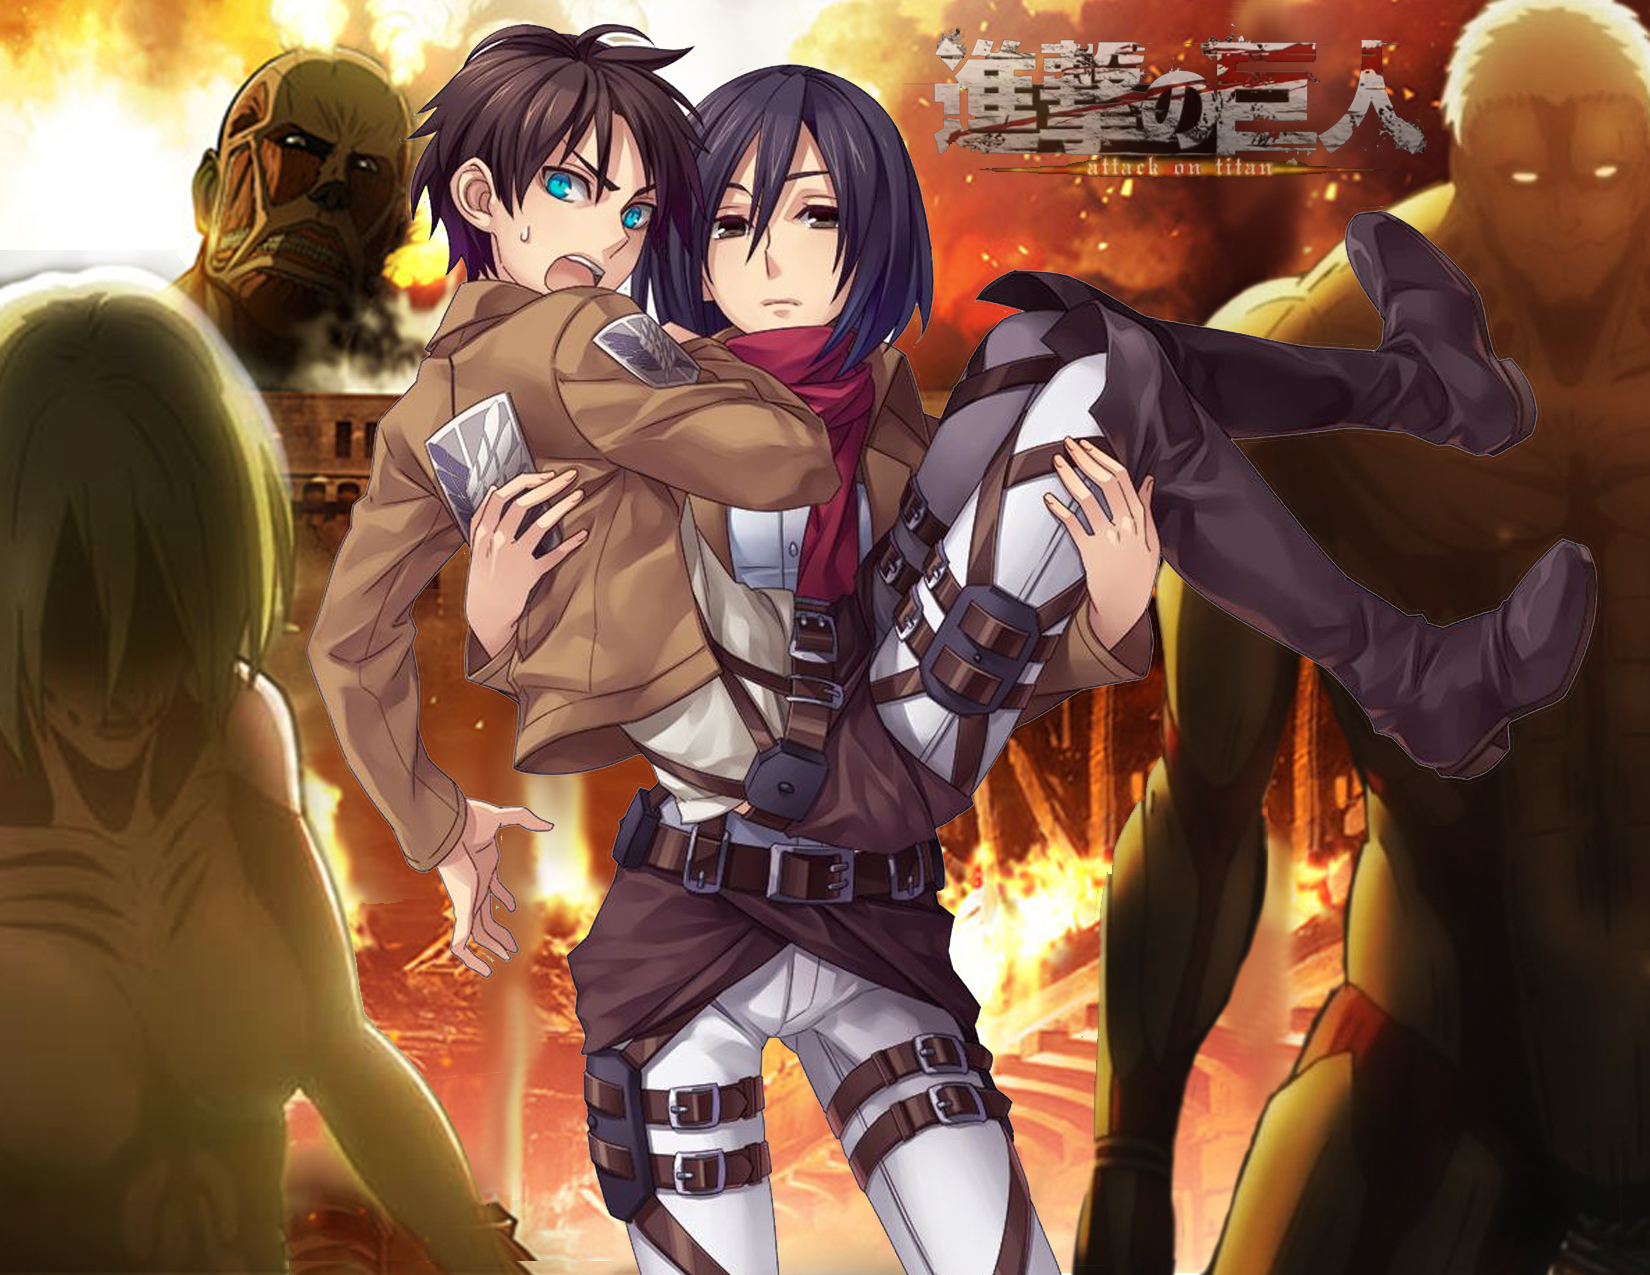 Fantastic On Titan Wallpapers Daily Anime Art